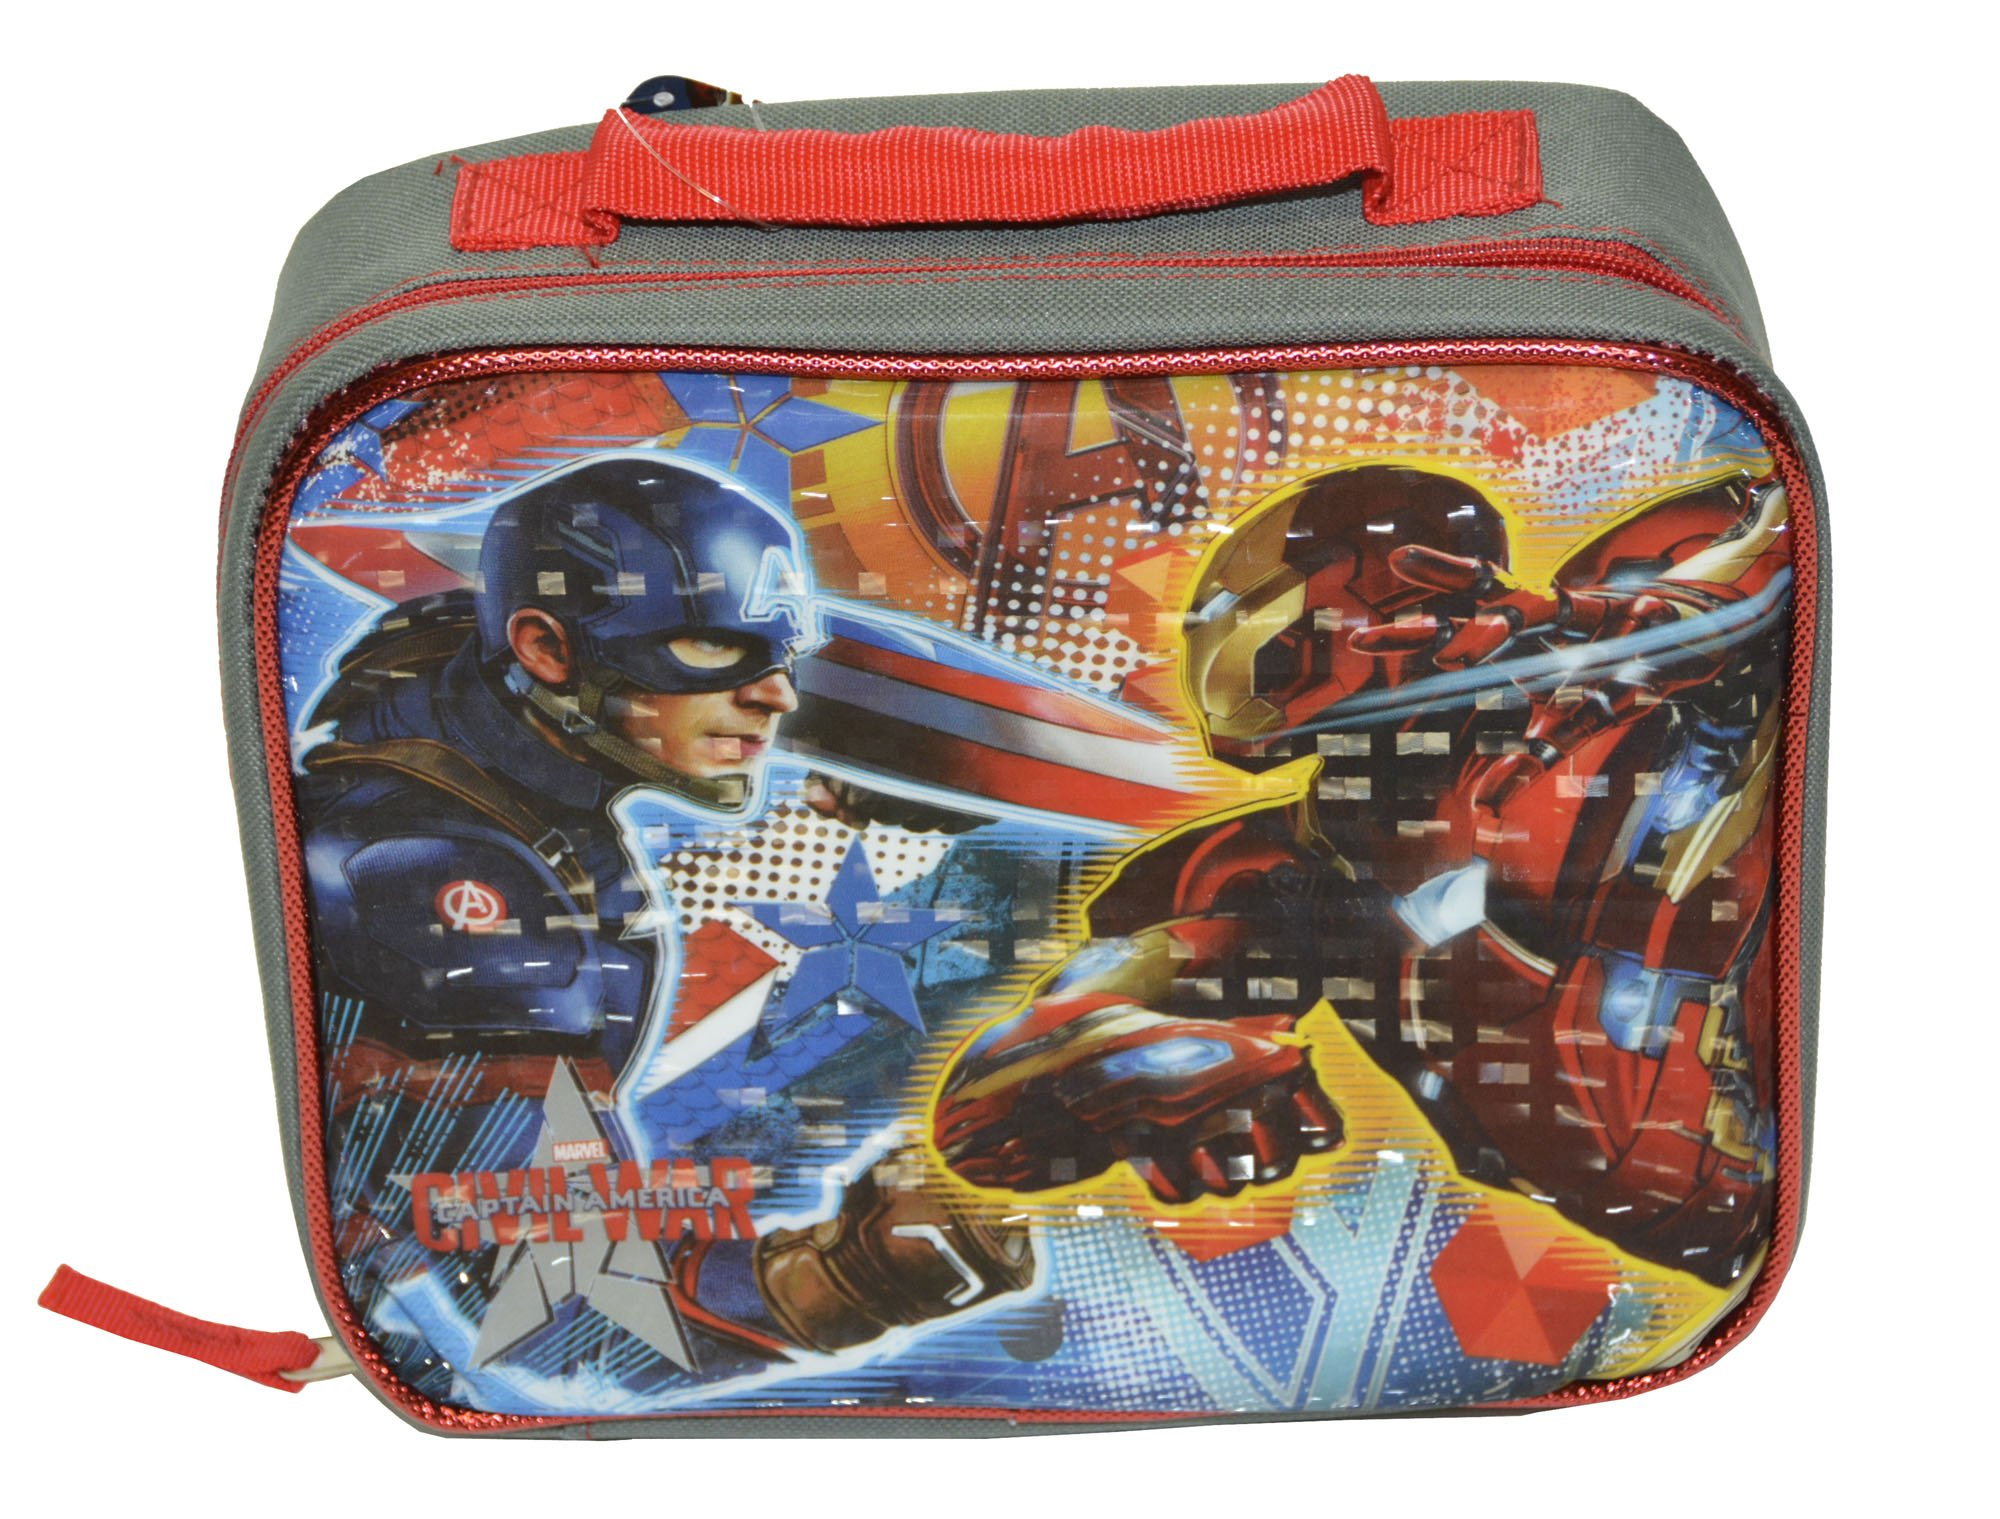 Marvel Avengers Captain America-3 Civil War Boys Lunch Bag (One size, Gray/Multi)